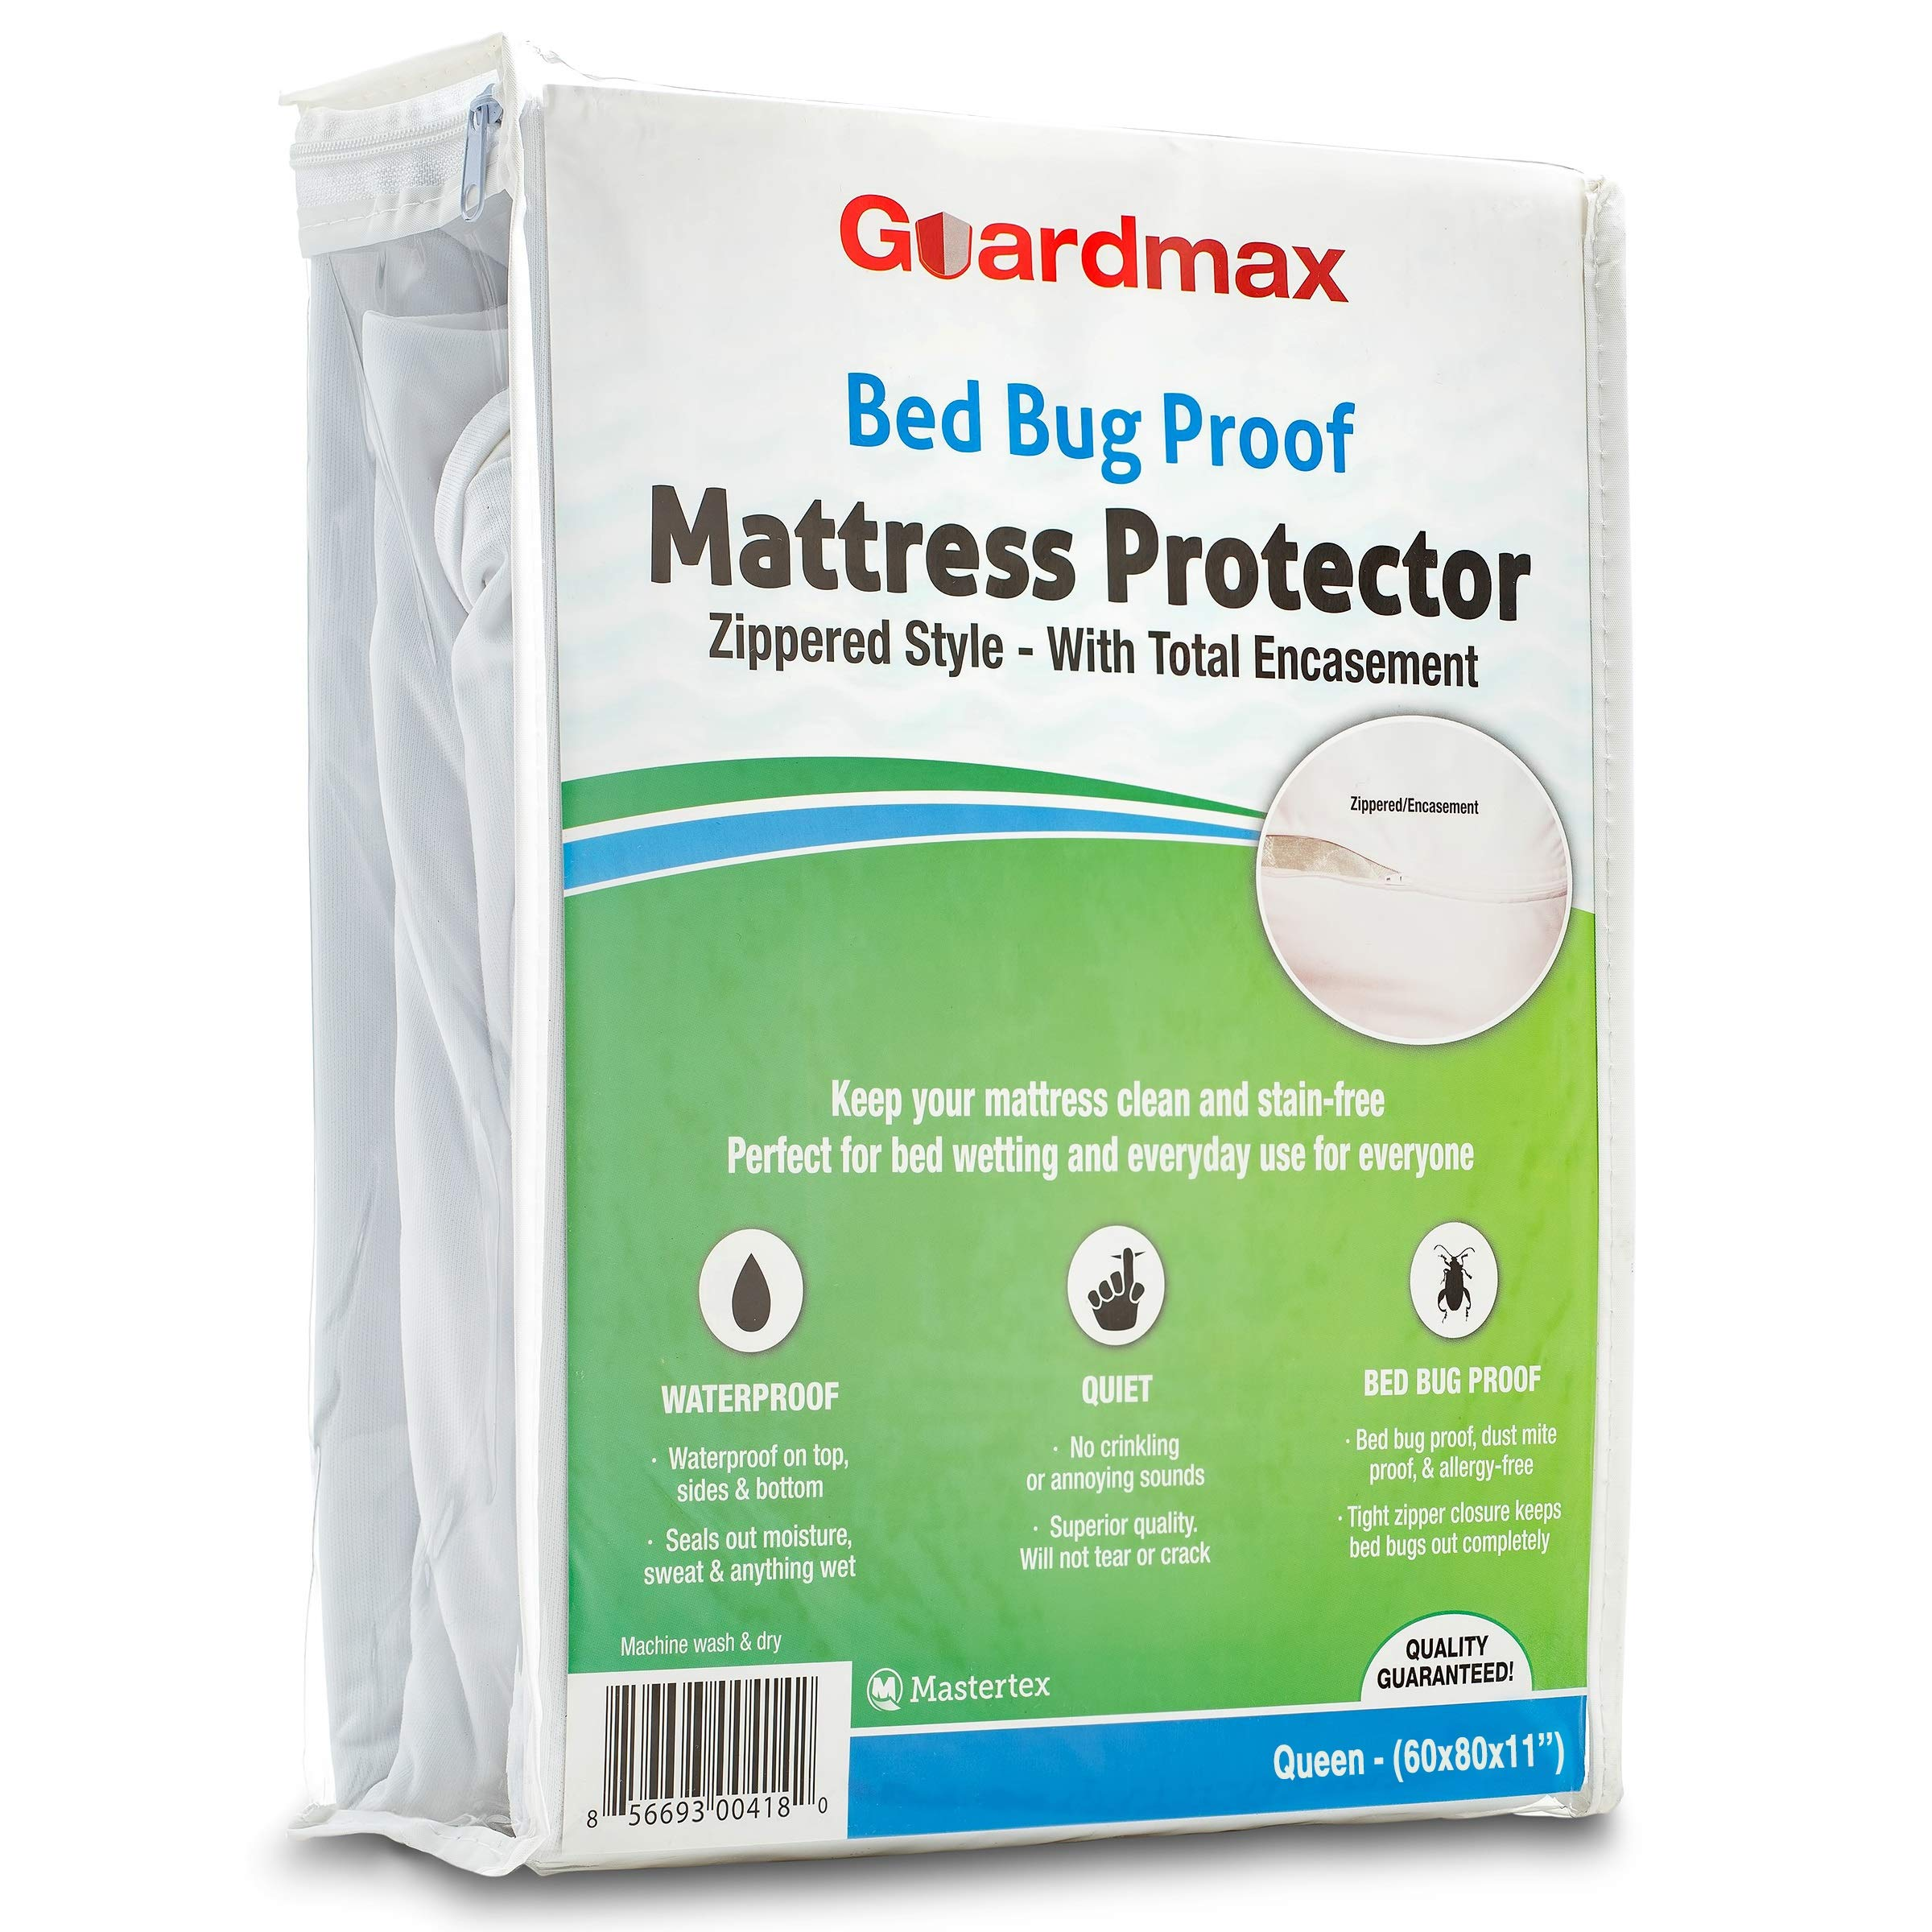 Guardmax Bed Bug Proof Mattress Encasement Protector Zippered Style, 100% Waterproof Cover, Hypoallergenic and Breathable, Soft and Noiseless - Queen Size (60x80x11)